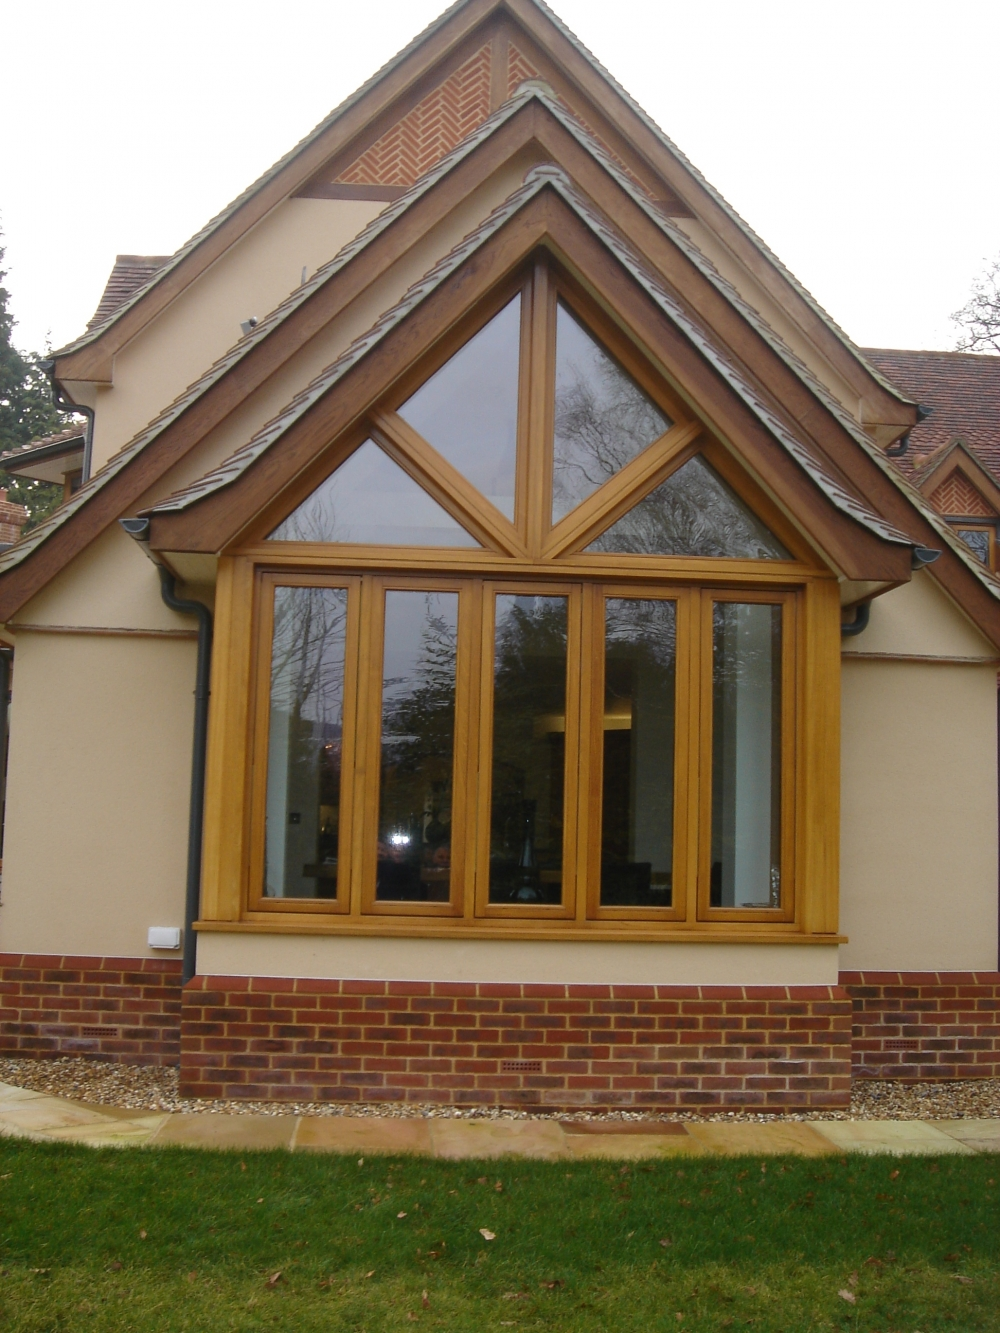 Bespoke Doors and Windows For Self Builds & Renovations – Vibrant ...